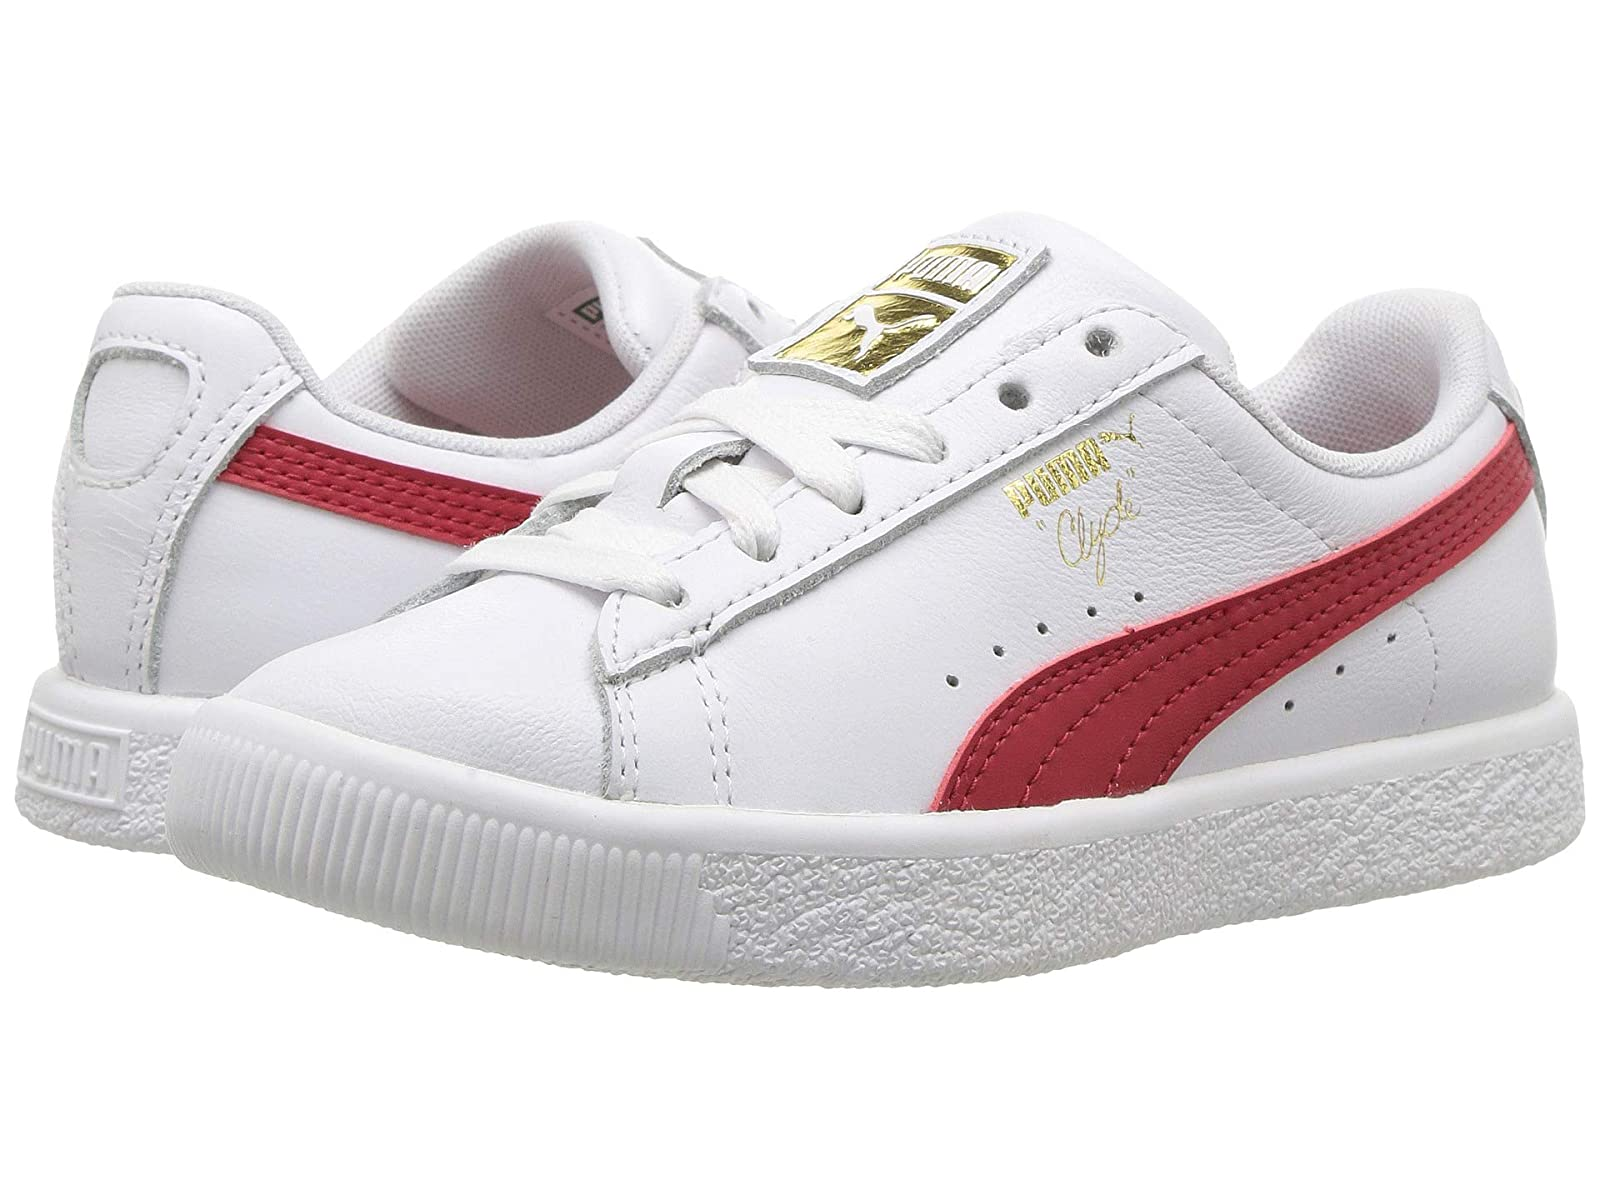 Puma Kids Clyde Core L Foil (Little Kid/Big Kid)Cheap and distinctive eye-catching shoes